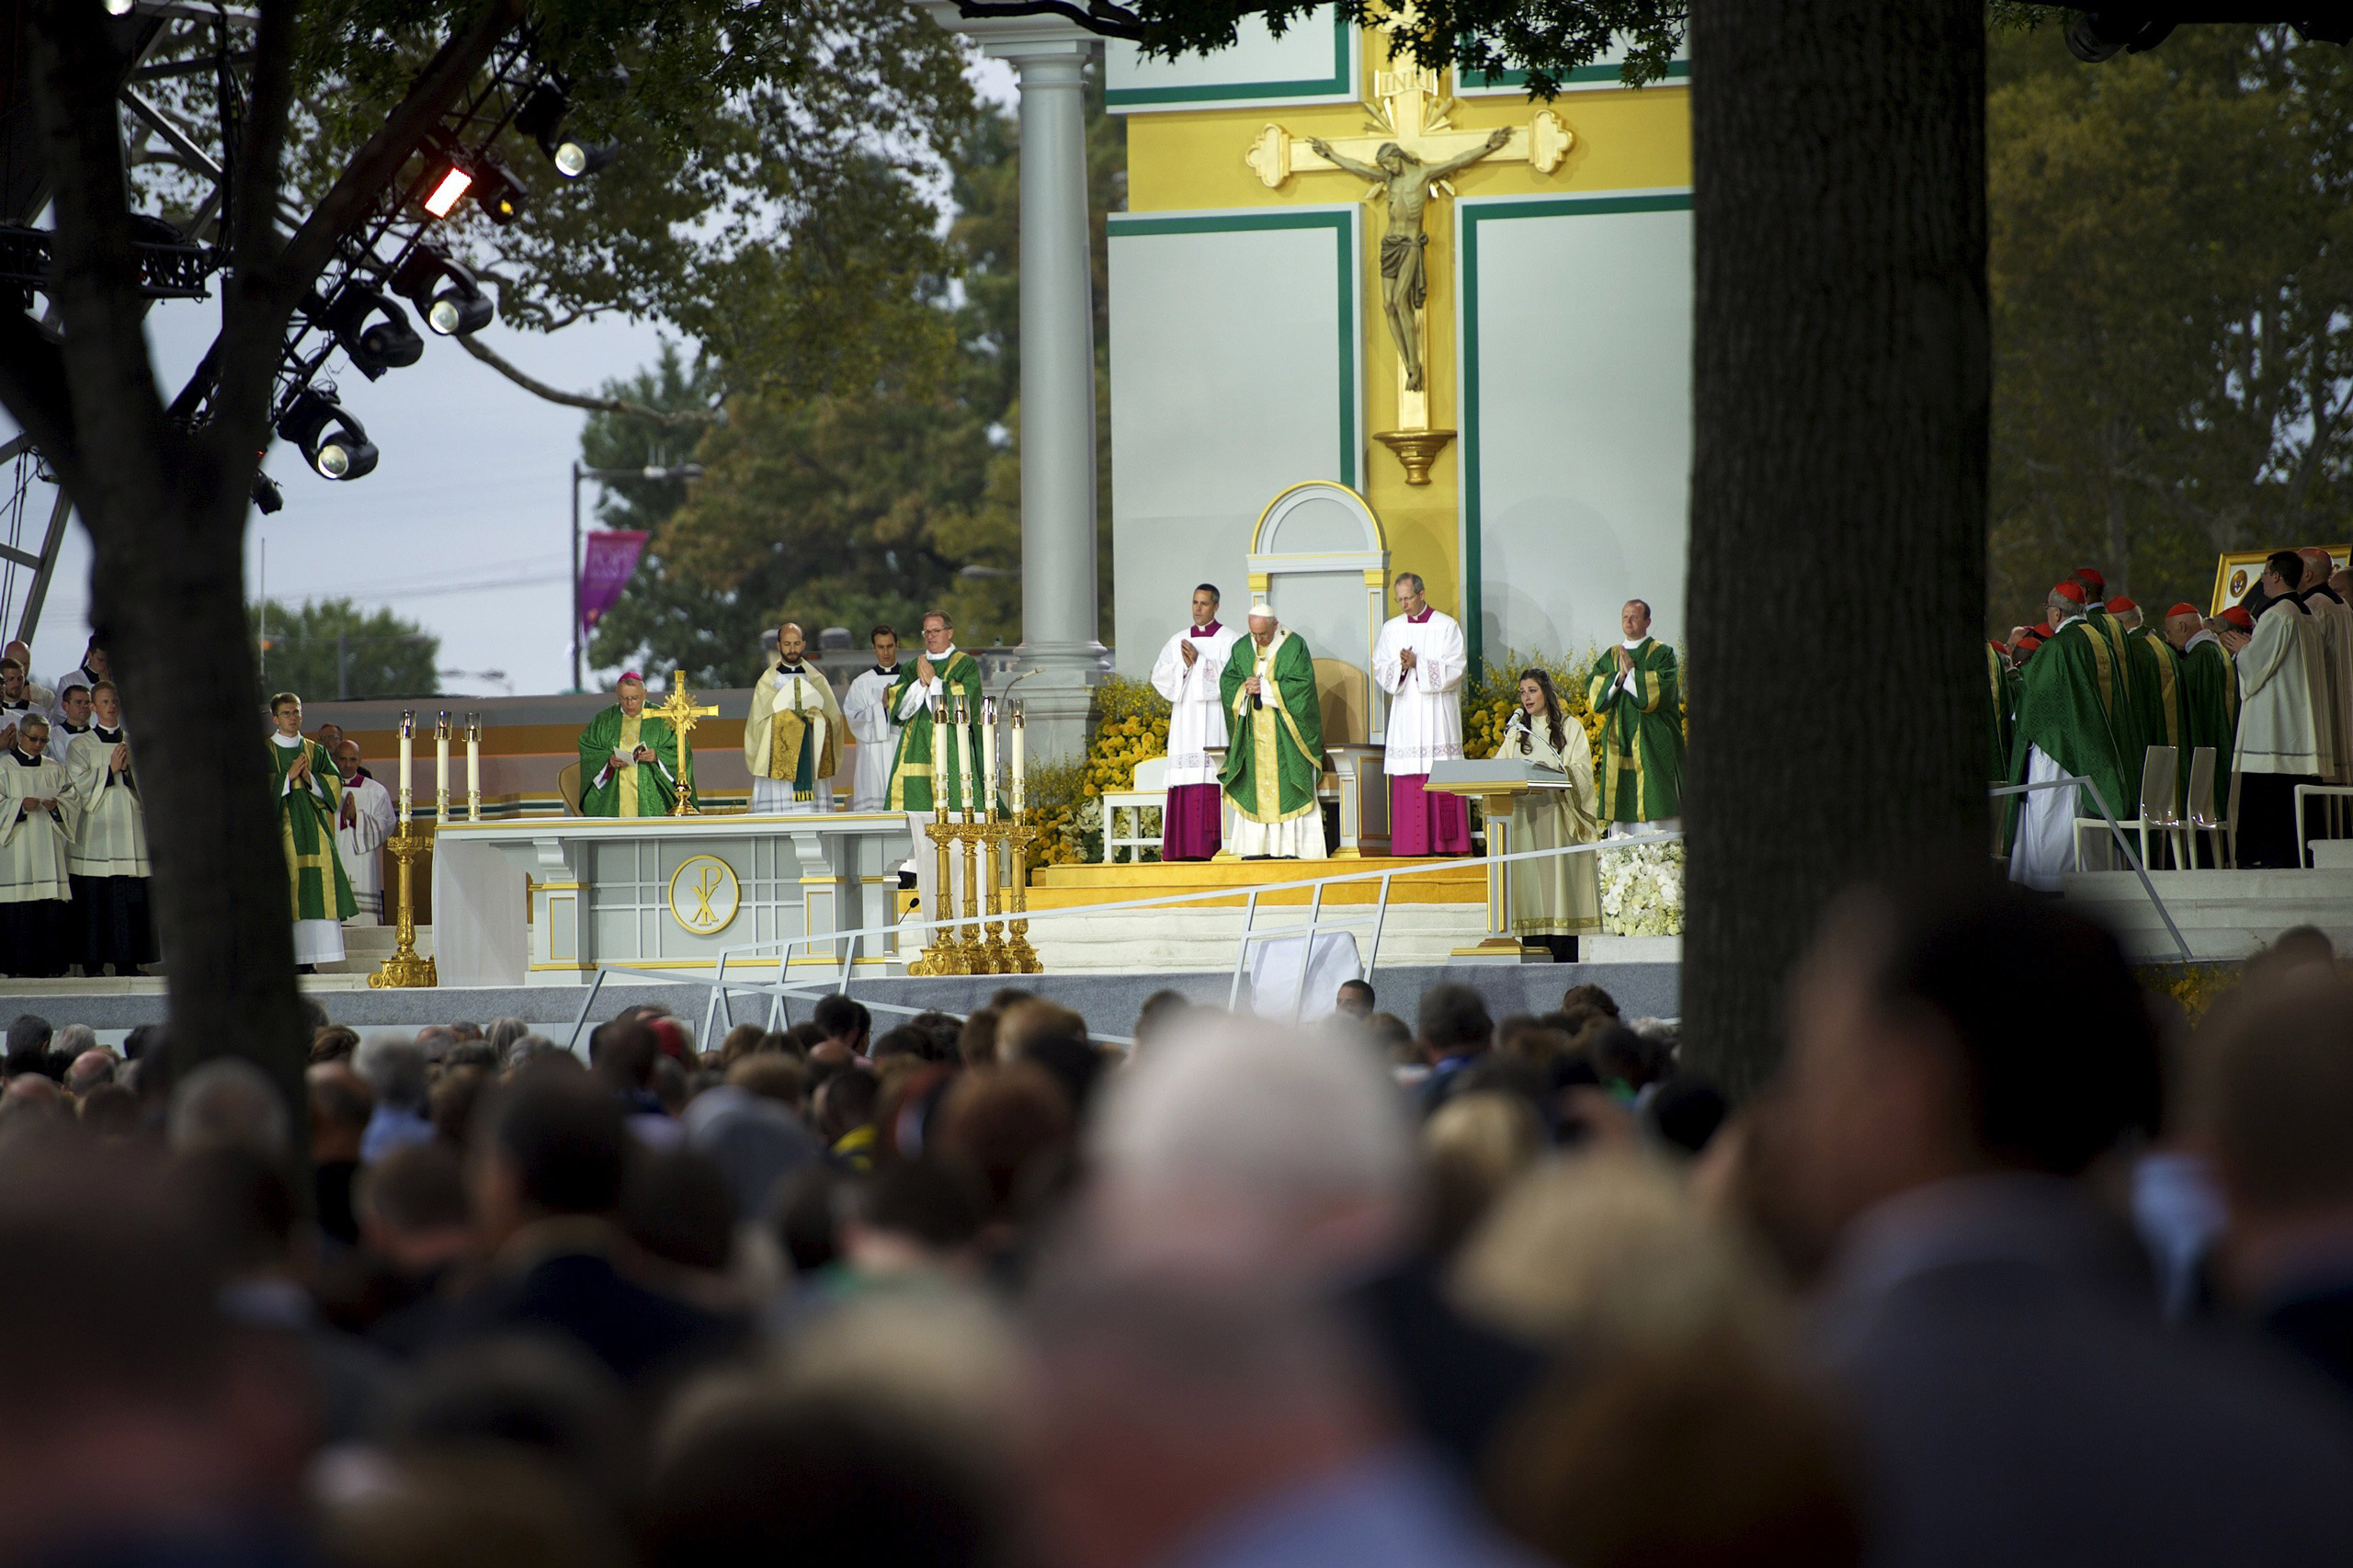 Pope Francis conducts the final mass of his U.S. visit in Philadelphia, on Sept. 27, 2015.